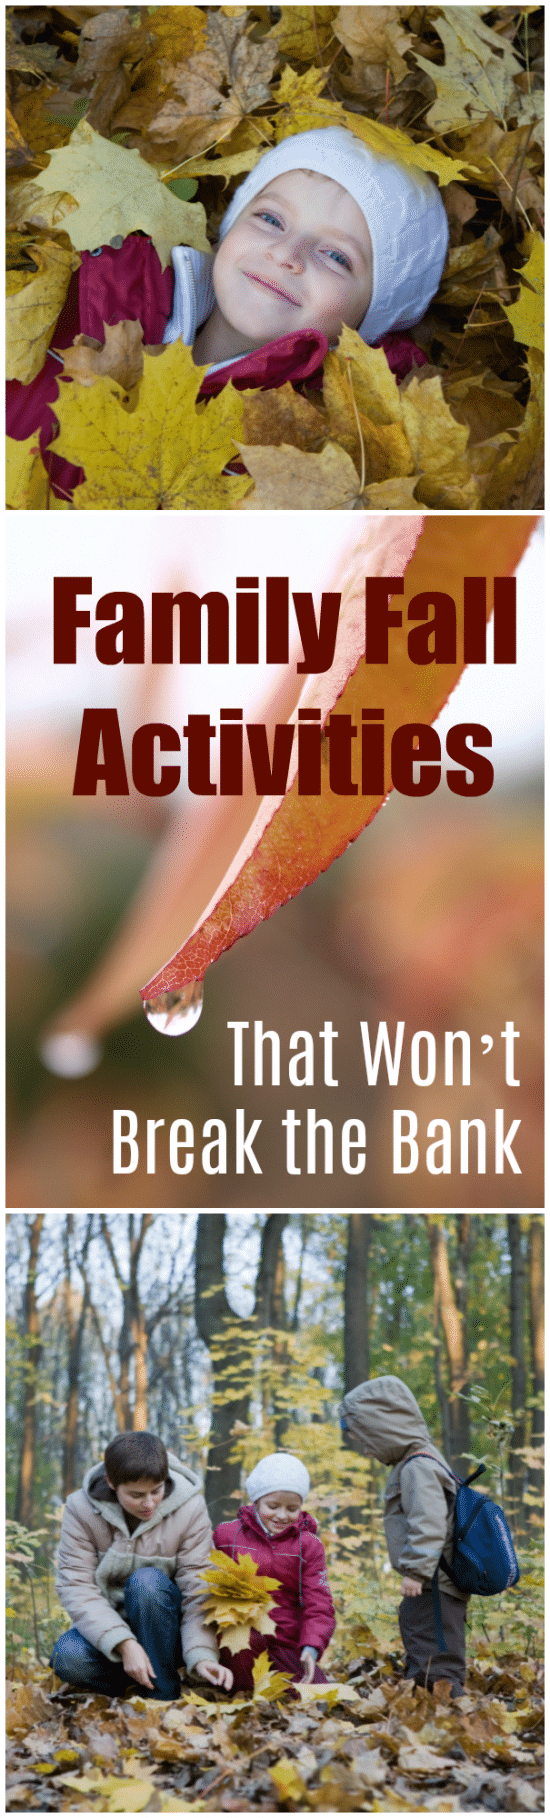 Round up the kids and enjoy autumn with these ideas for Family Fall Activities that Won't Break the Bank!